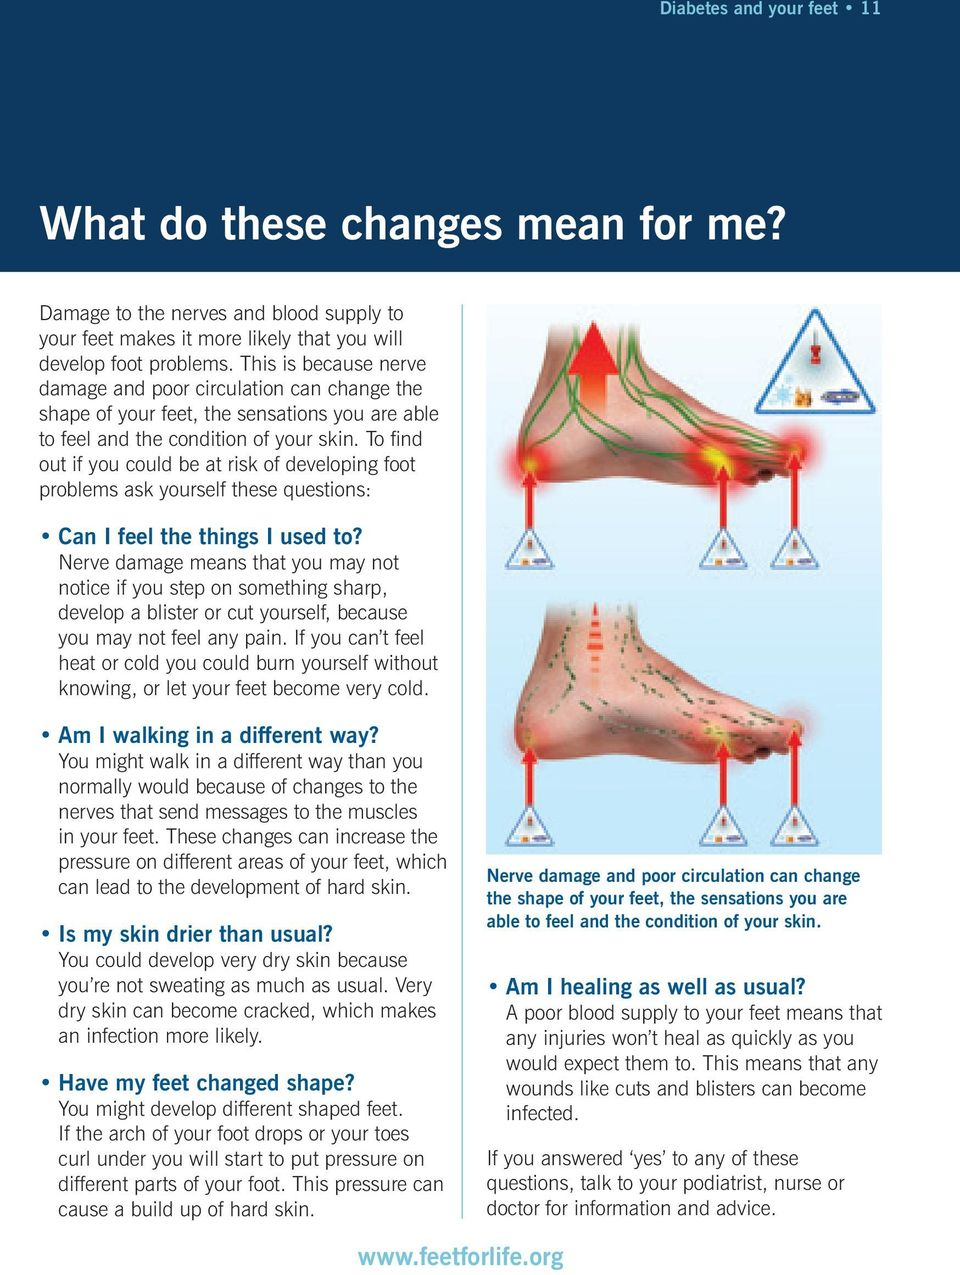 To find out if you could be at risk of developing foot problems ask yourself these questions: Can I feel the things I used to?